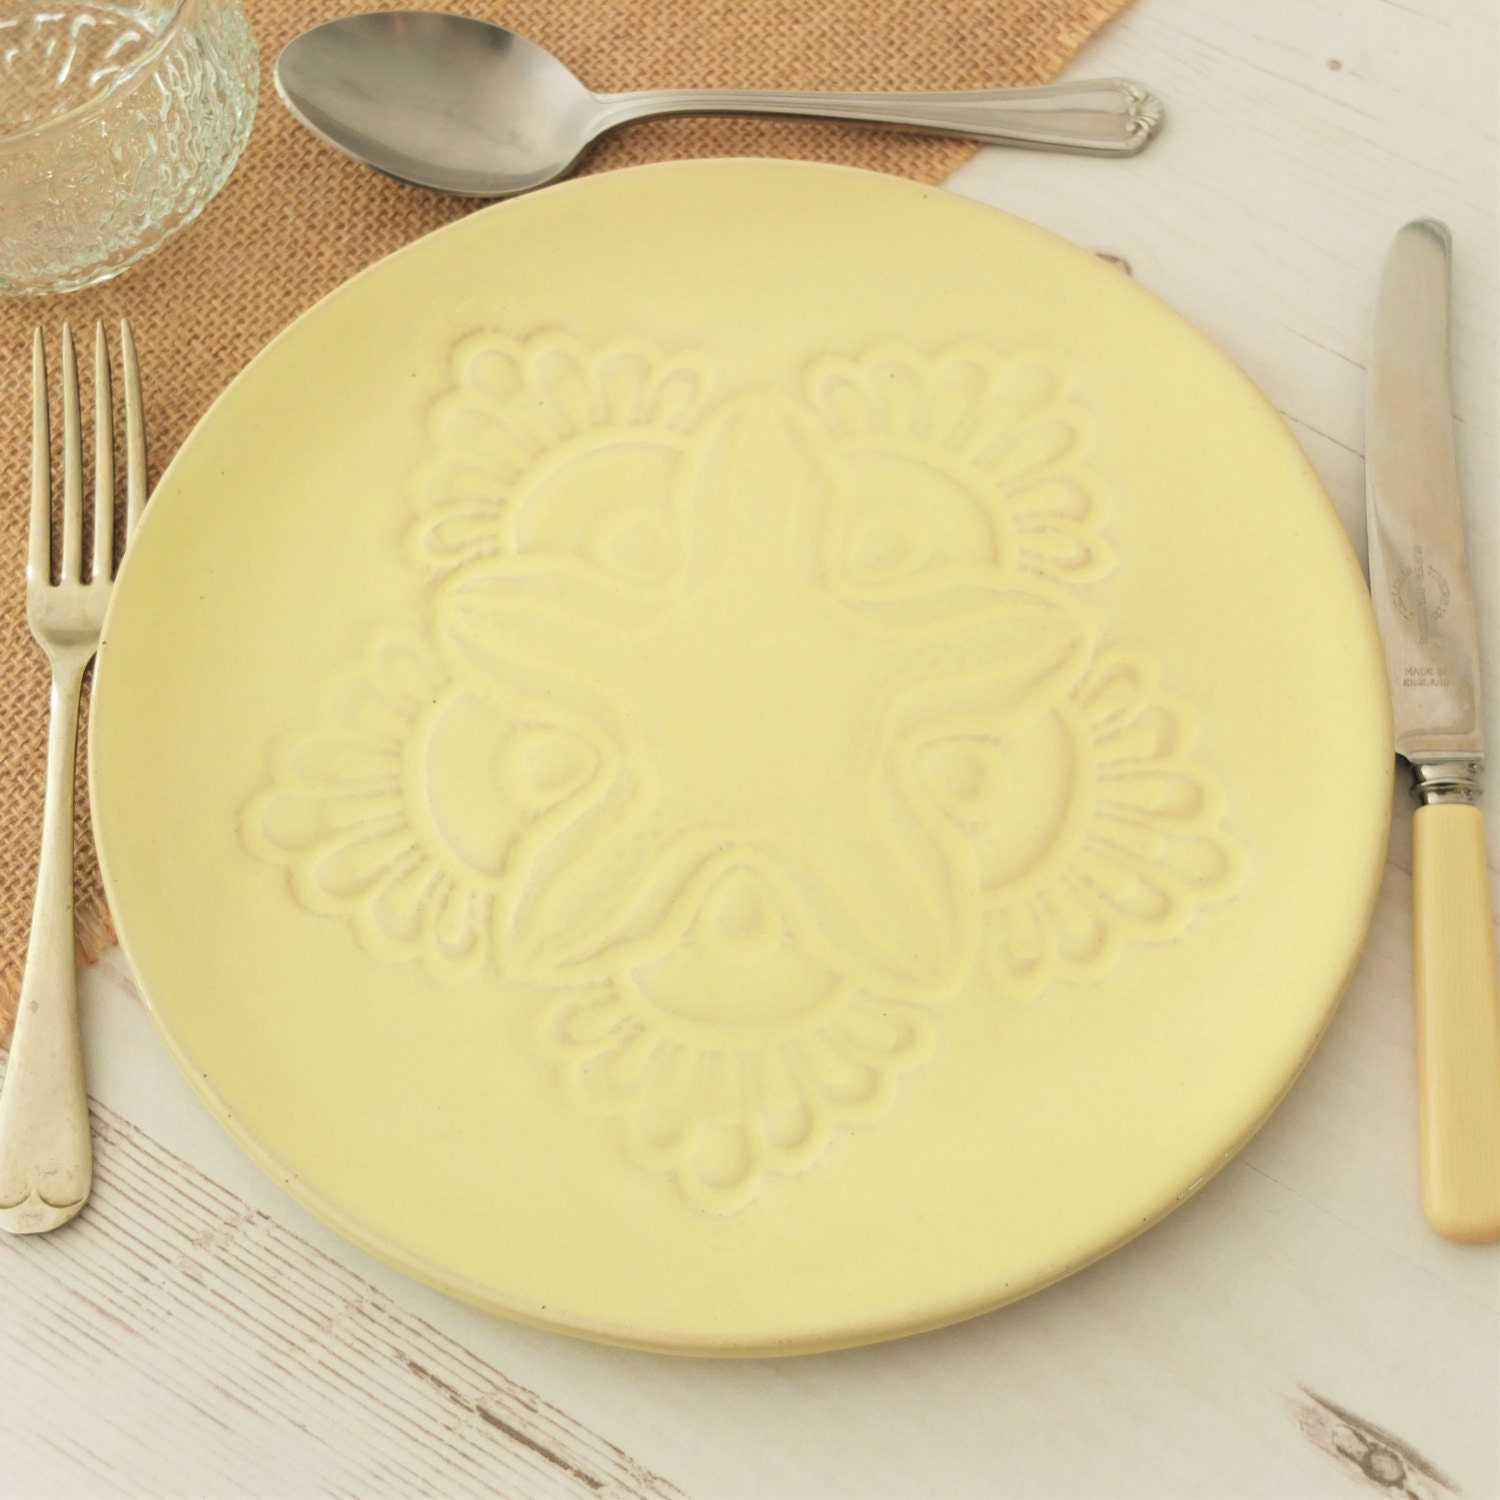 handmade ceramic dinner plate vintage lace yellow plate